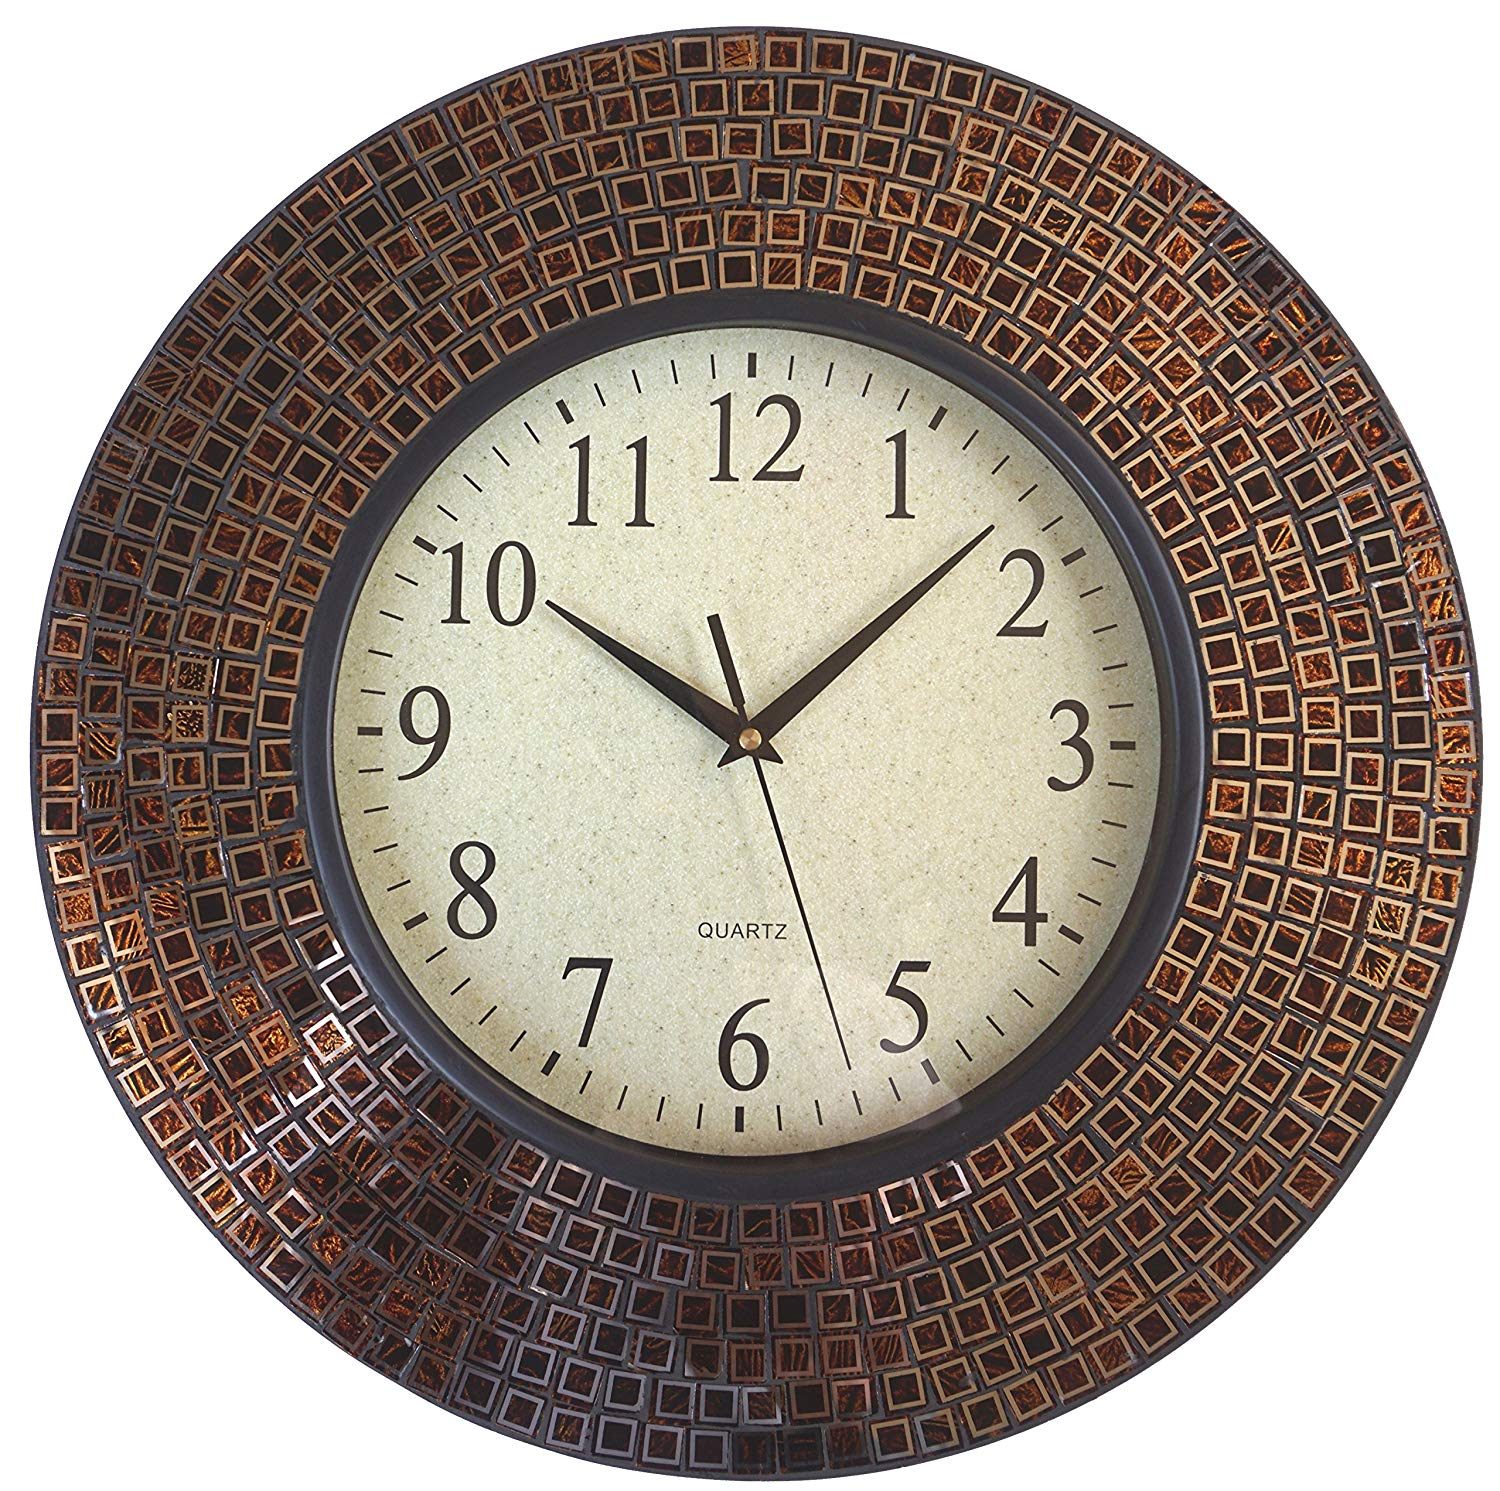 """LuLu Decor, 16"""" Amber Checkered Mosaic Wall Clock with 9.5"""" Glass Dial, Silent Movement for Living Room & Office Space(LP80)"""